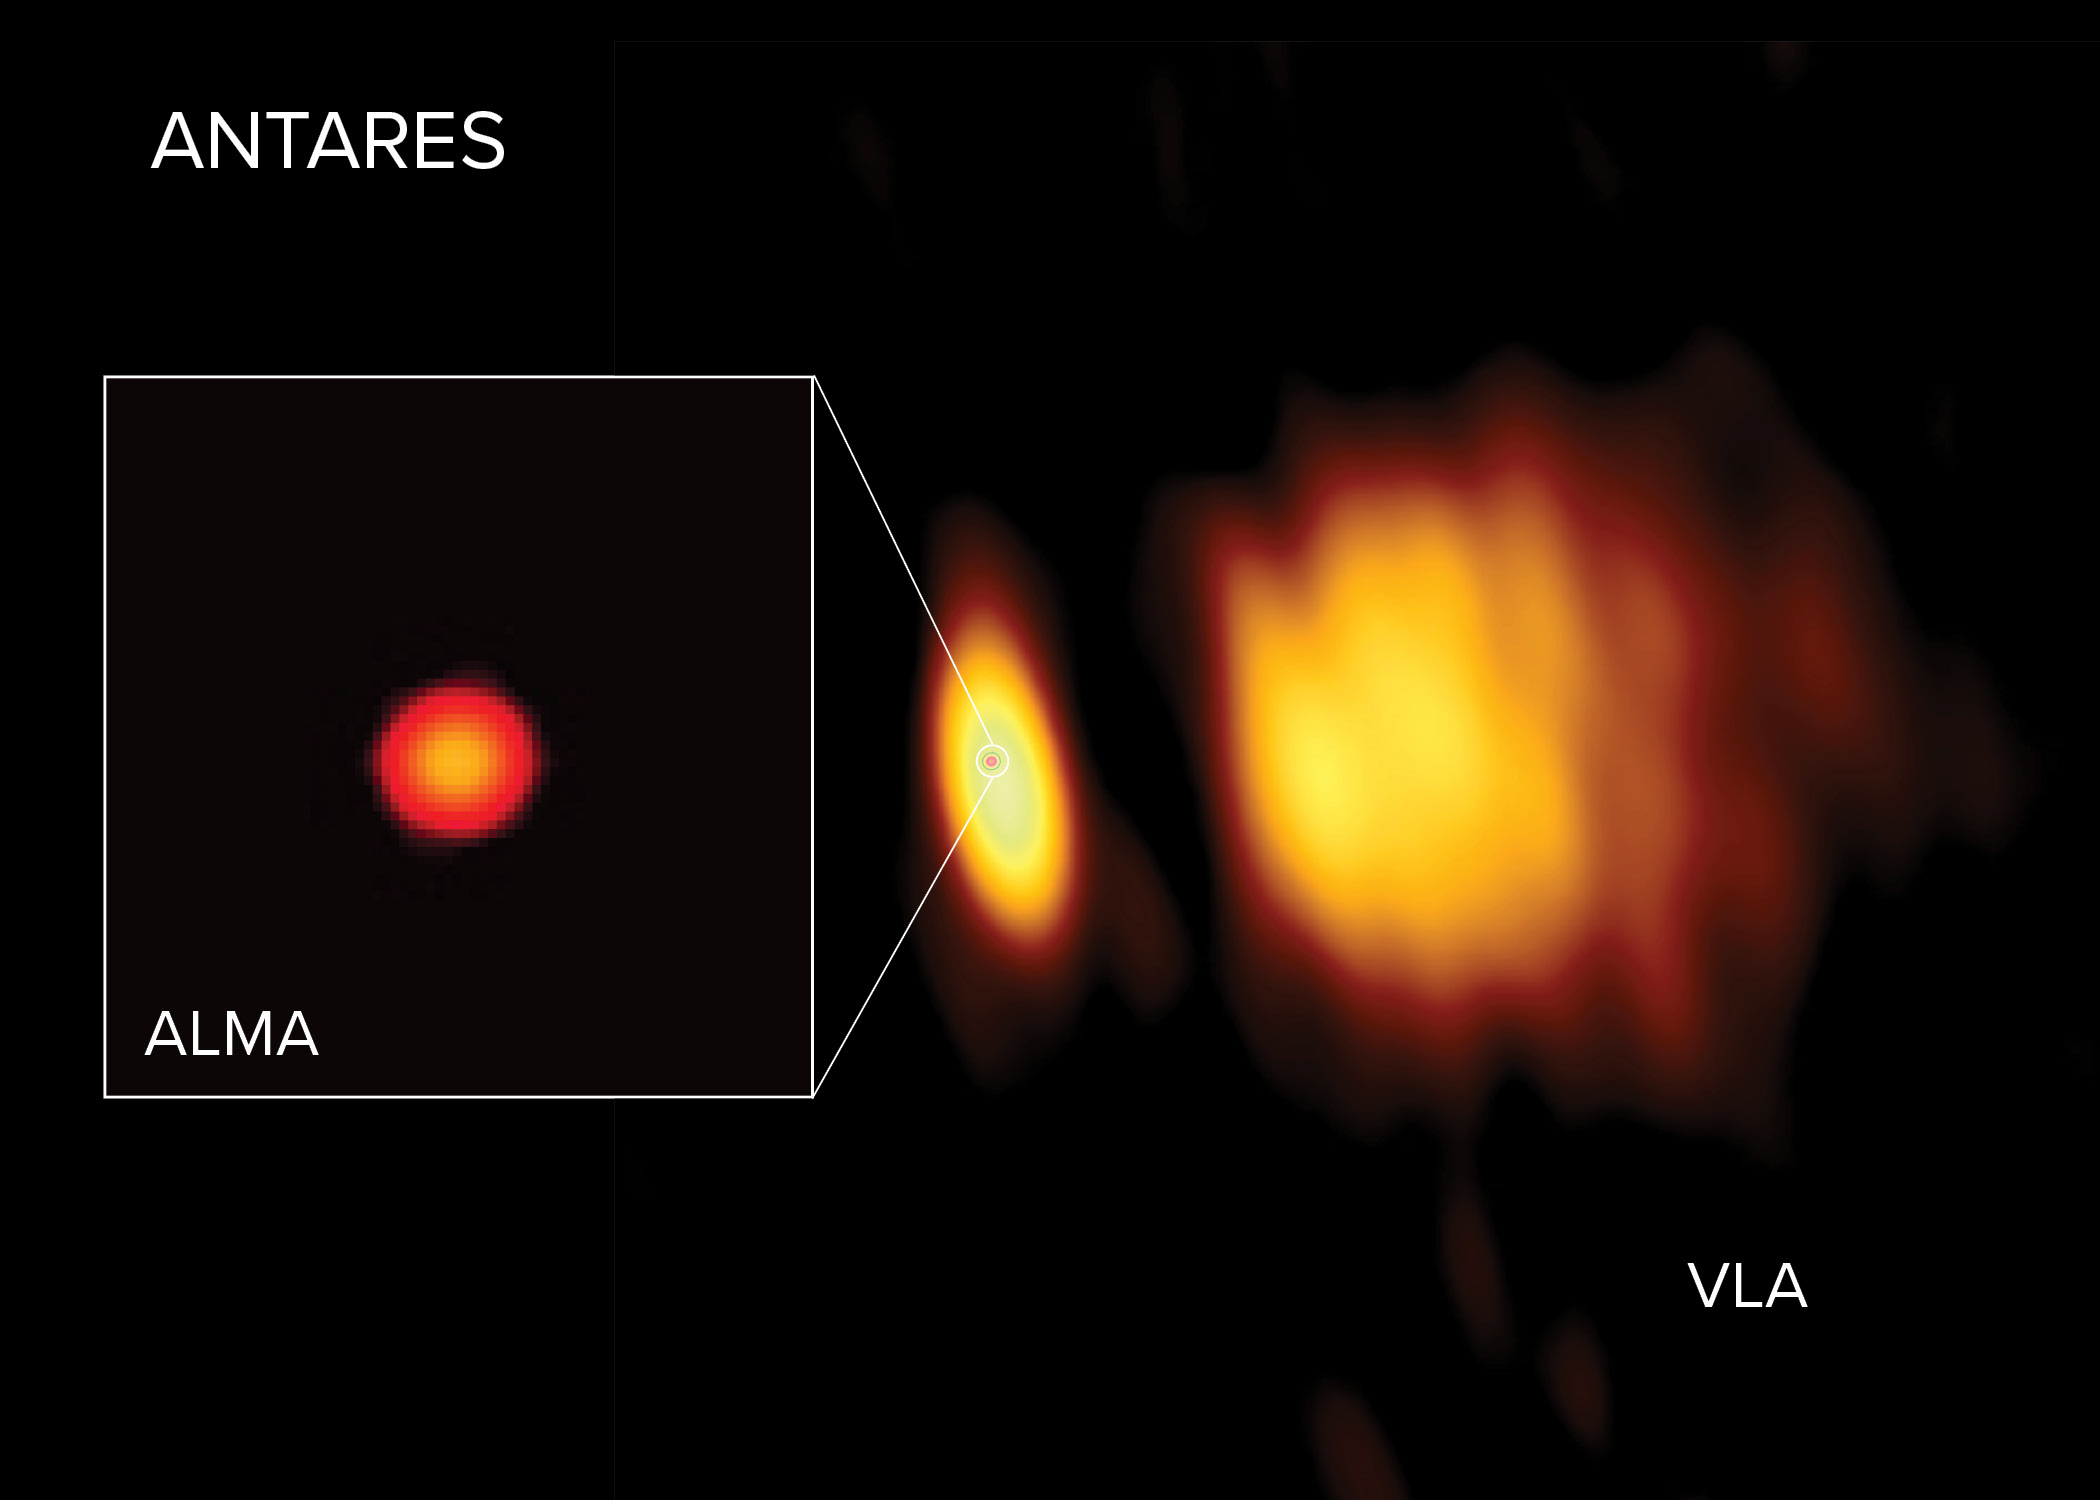 Radio images of Antares